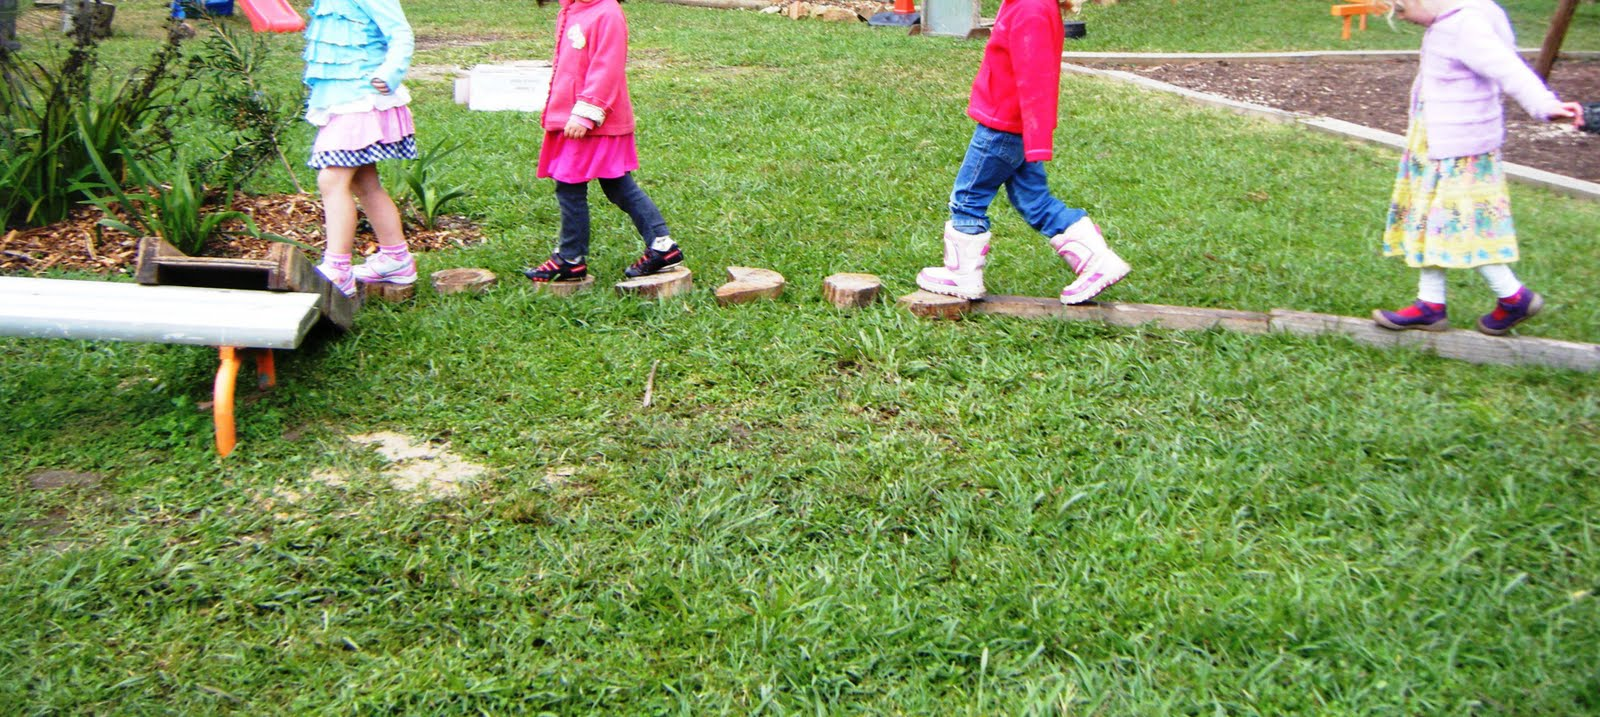 children play loose parts imagination their own obstacle course